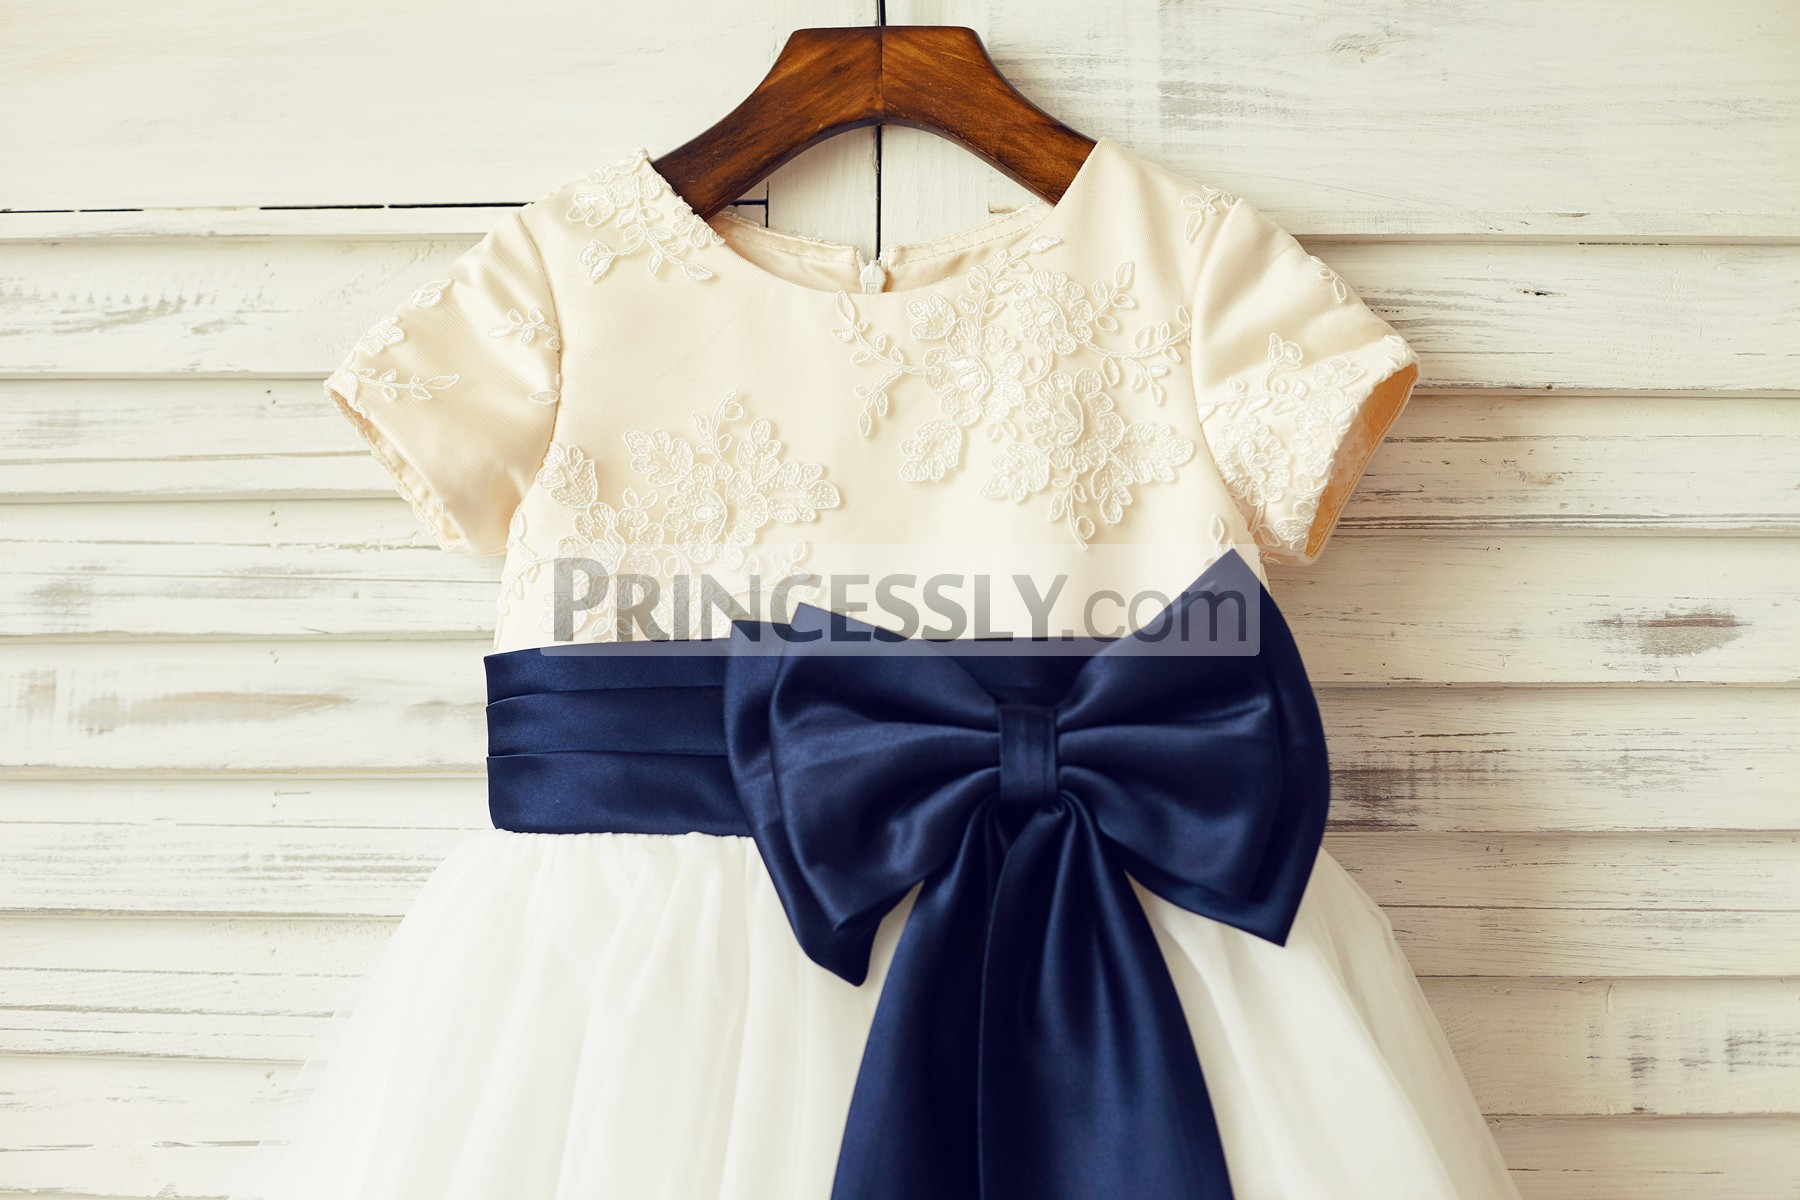 98a351d6fea3 Short Sleeves Ivory lace Tulle Flower Girl Dress with Navy Blue Belt ...